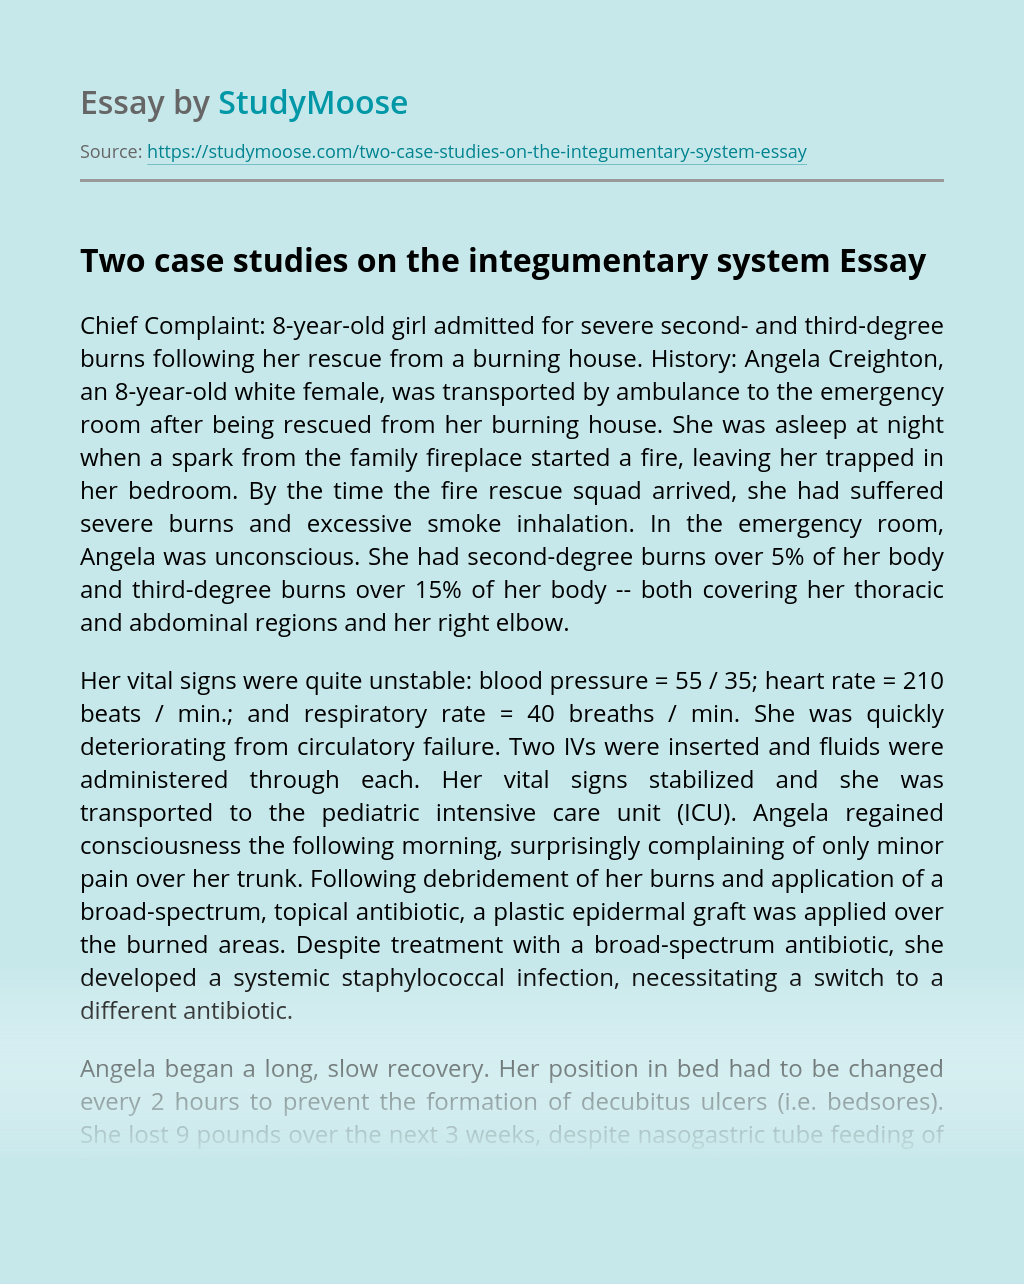 Two case studies on the integumentary system